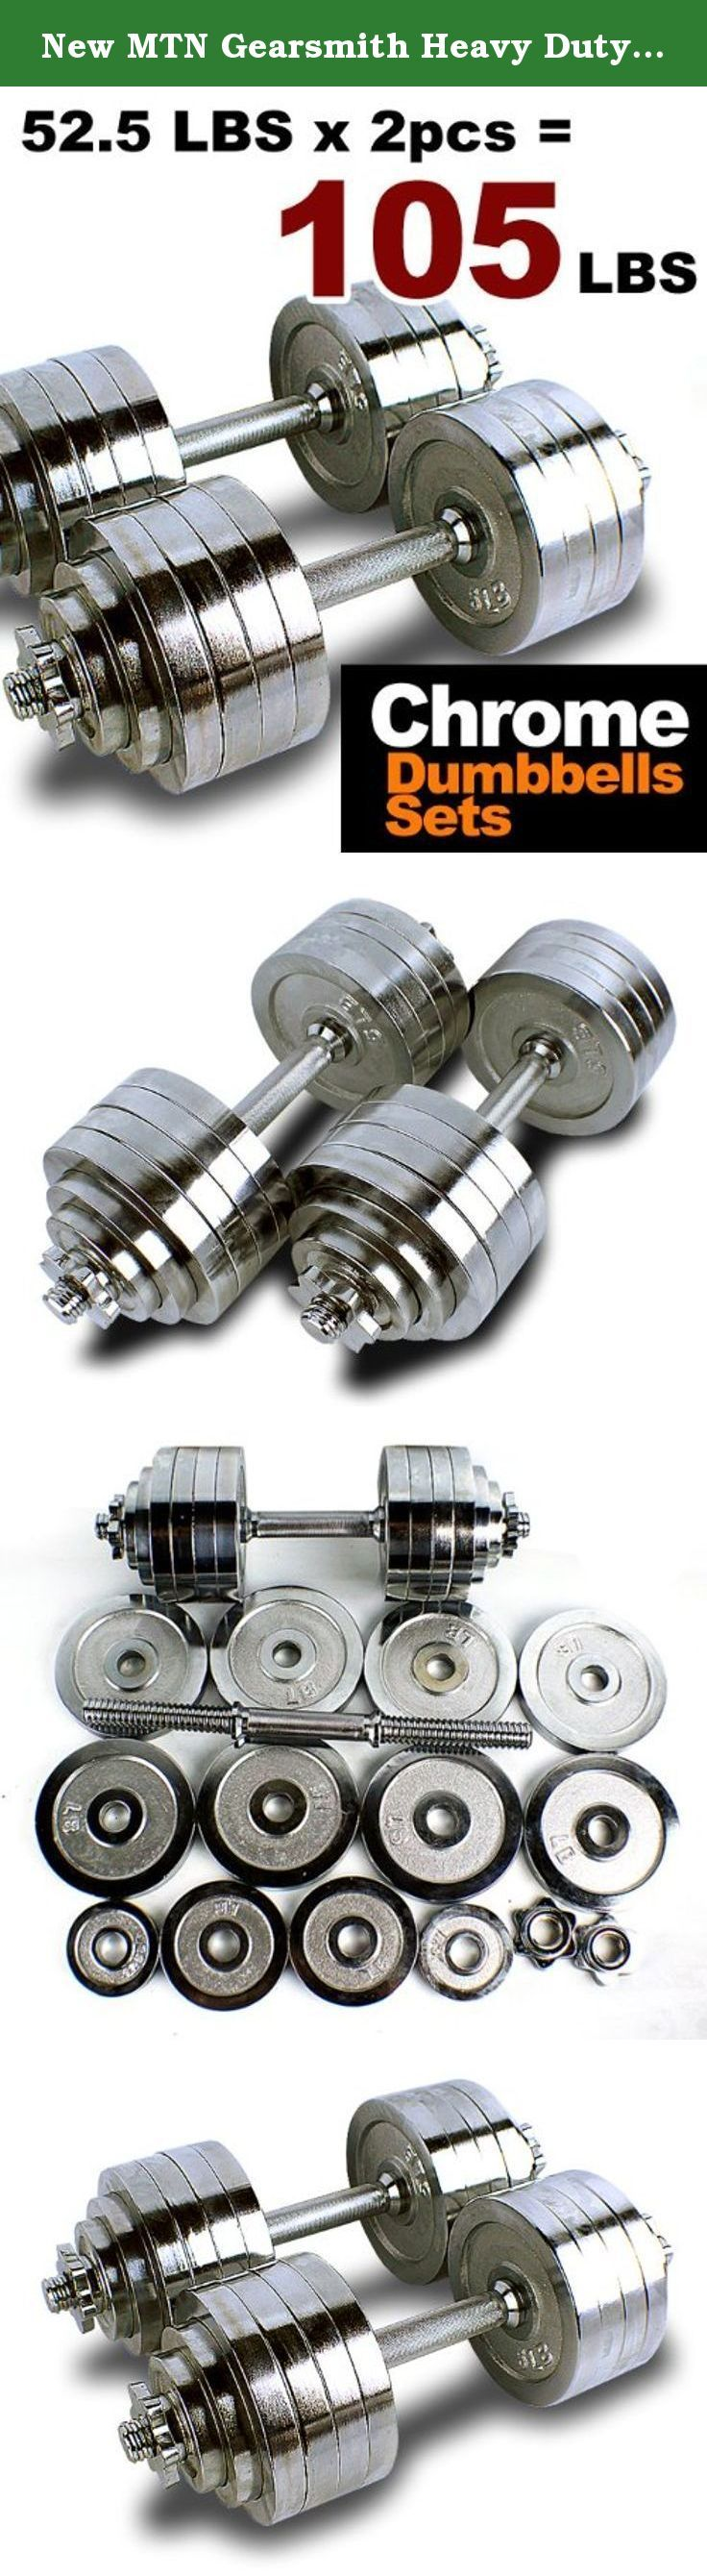 New MTN Gearsmith Heavy Duty Adjustable Cast Iron Chrome Weight Dumbbell Set Dumbbells 52.5 100 105 200 lbs (Silver-Chrome-Coated, 105 LB). This special sales is for various style and size of the adjustable dumbbell kit (52.5 lbs, 100 lbs , 105 lbs or 200 lbs). Not everyone who is interested in getting a better body through strength training has the necessary room in their home for a dozen or more sets of dumbbells. This adjustable and versatile dumbbell kit is small, convenient, and easy…